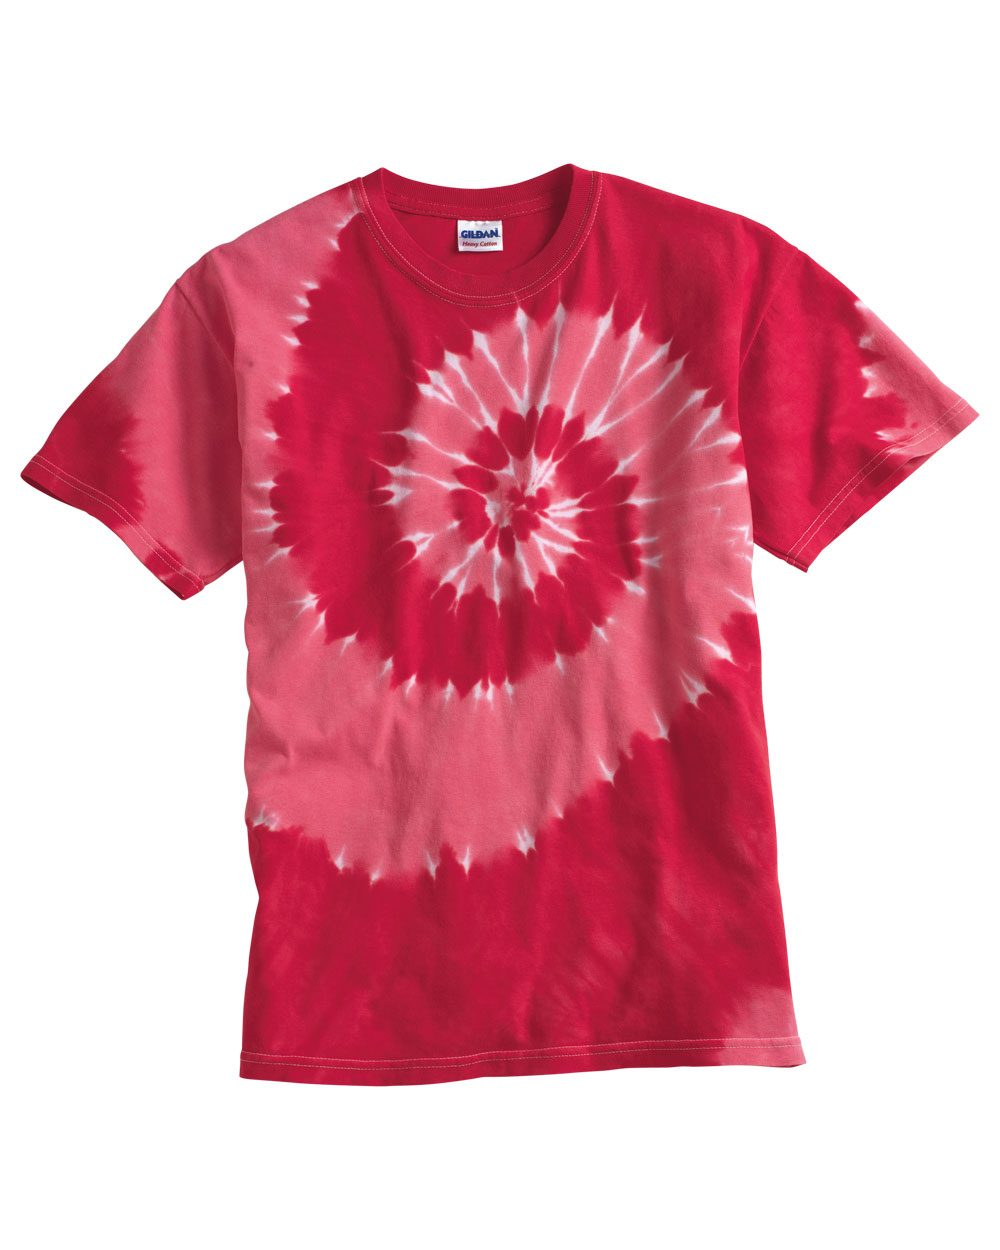 Tie-Dyed Youth Tone-on-Tone Spiral T-Shirt - 20B21